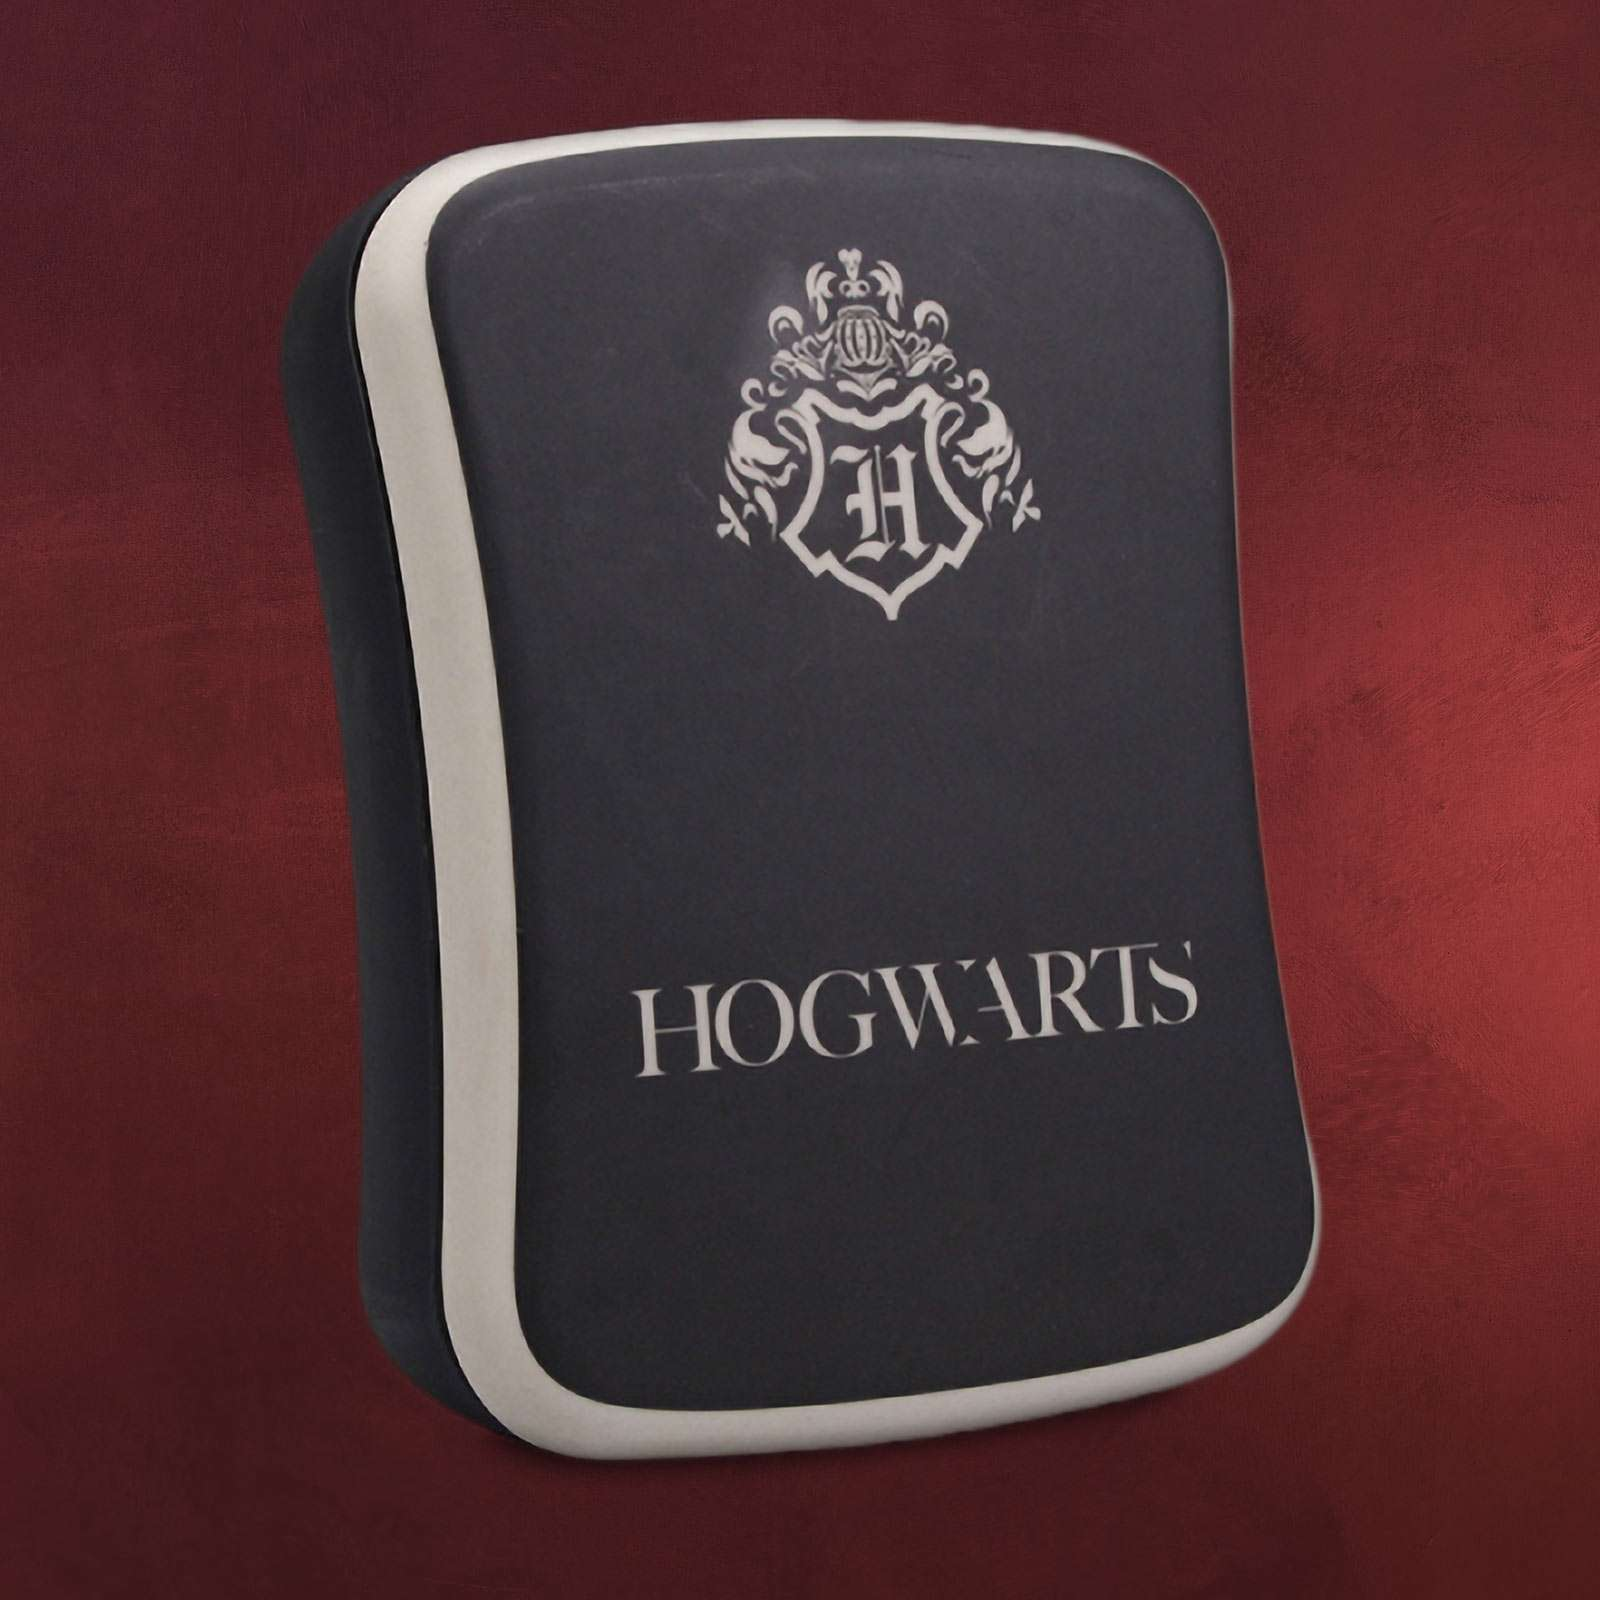 Harry Potter Hogwarts Wappen Bettwäsche Elbenwald Harry Potter Hogwarts Wappen Lunchbox